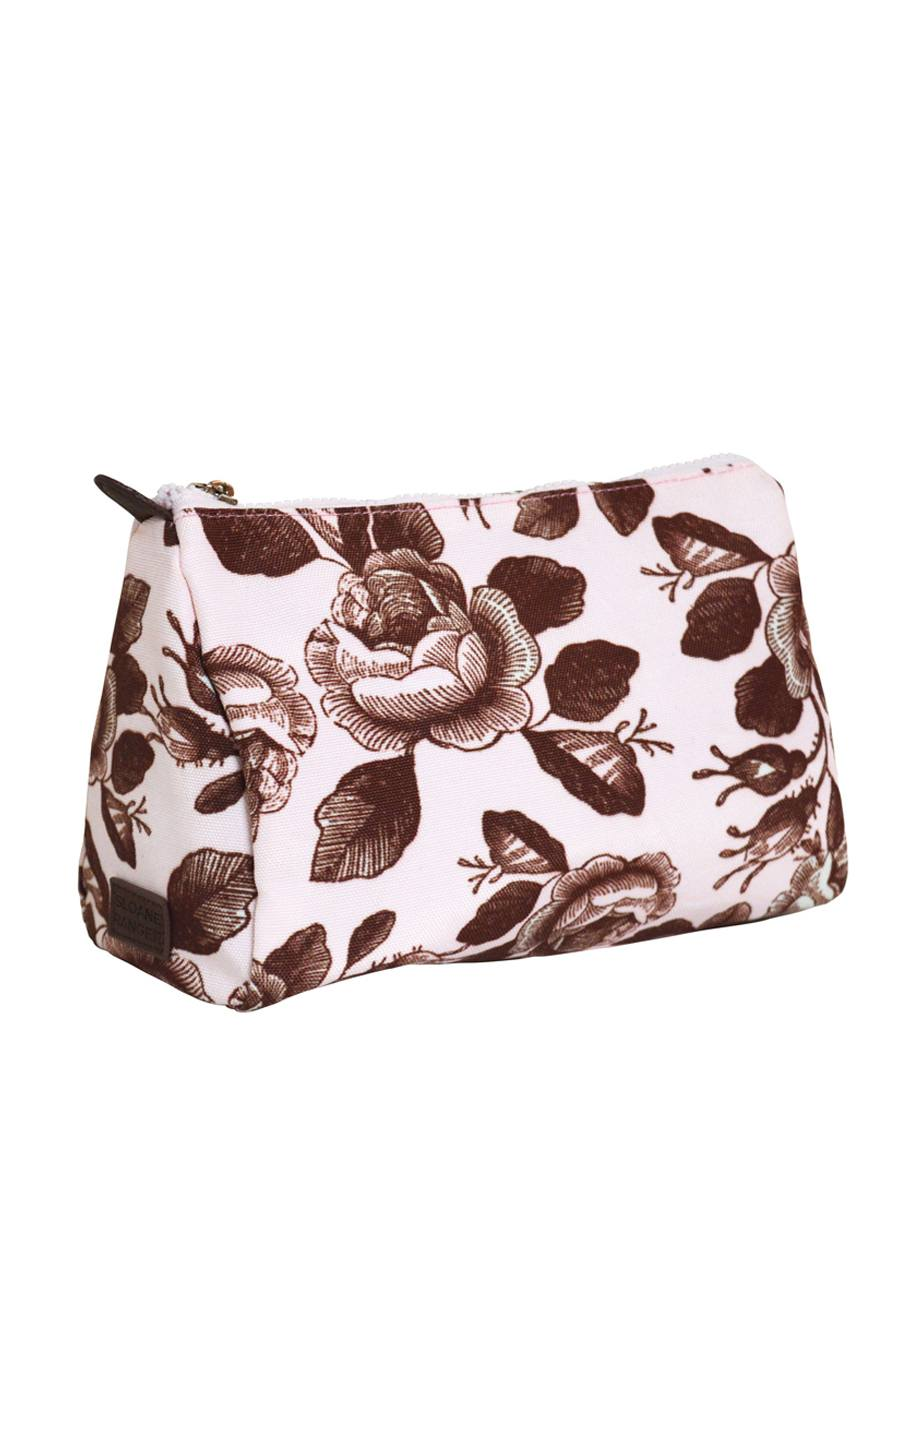 tea time cosmetic pouch. - FINAL SALE